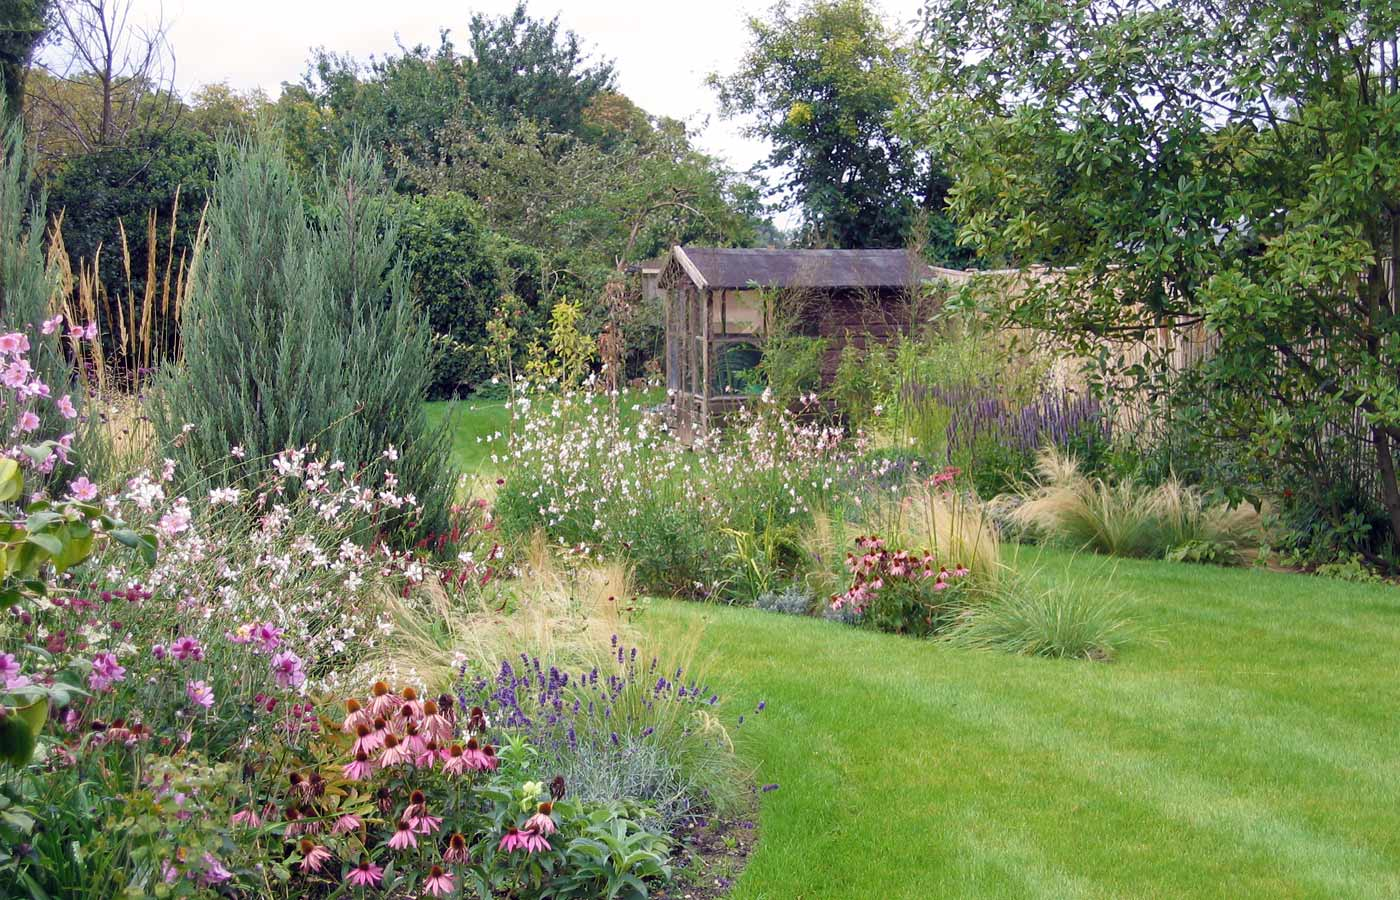 Jua landscape design plans backyard for Cottage garden plans designs